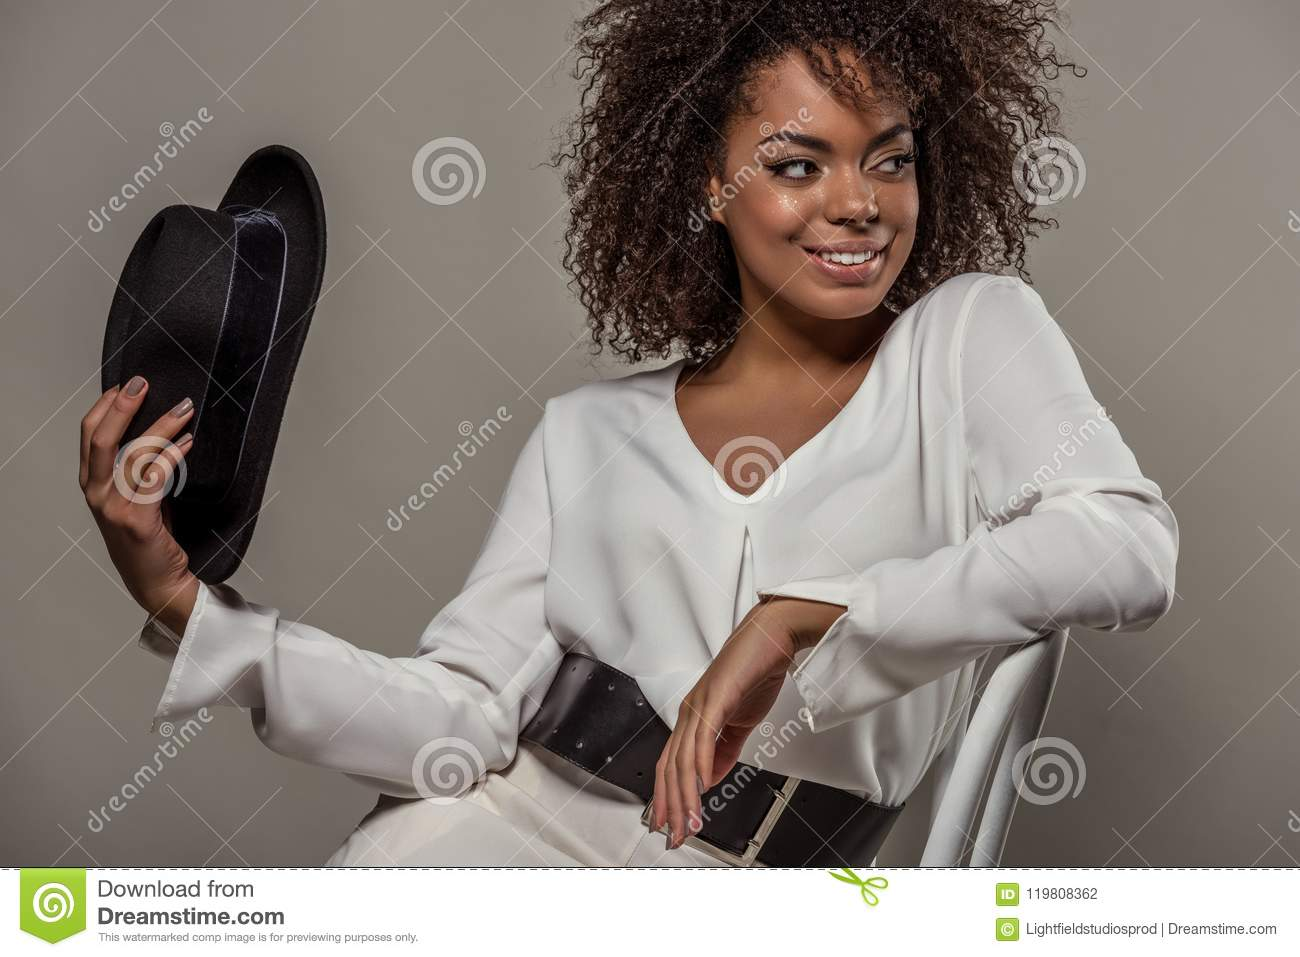 Young sensual african american woman in white shirt holding fedora hat